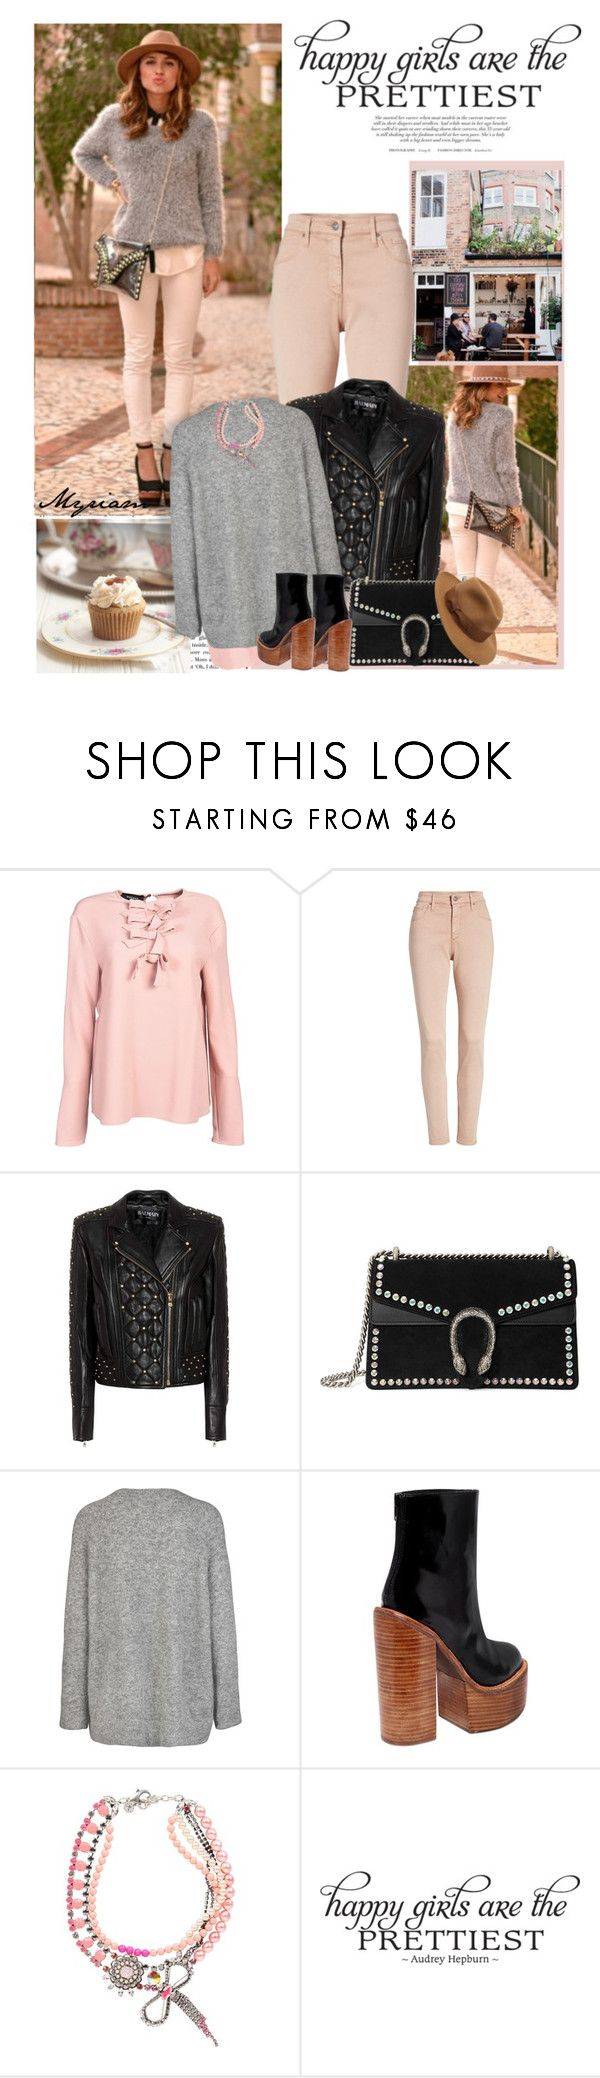 """cool girl in jacket leather"" by lovemeforthelife-myriam ❤ liked on Polyvore featuring Rochas, AG Adriano Goldschmied, Balmain, Gucci, Jeffrey Campbell, REMINISCENCE, WALL and Borsalino"